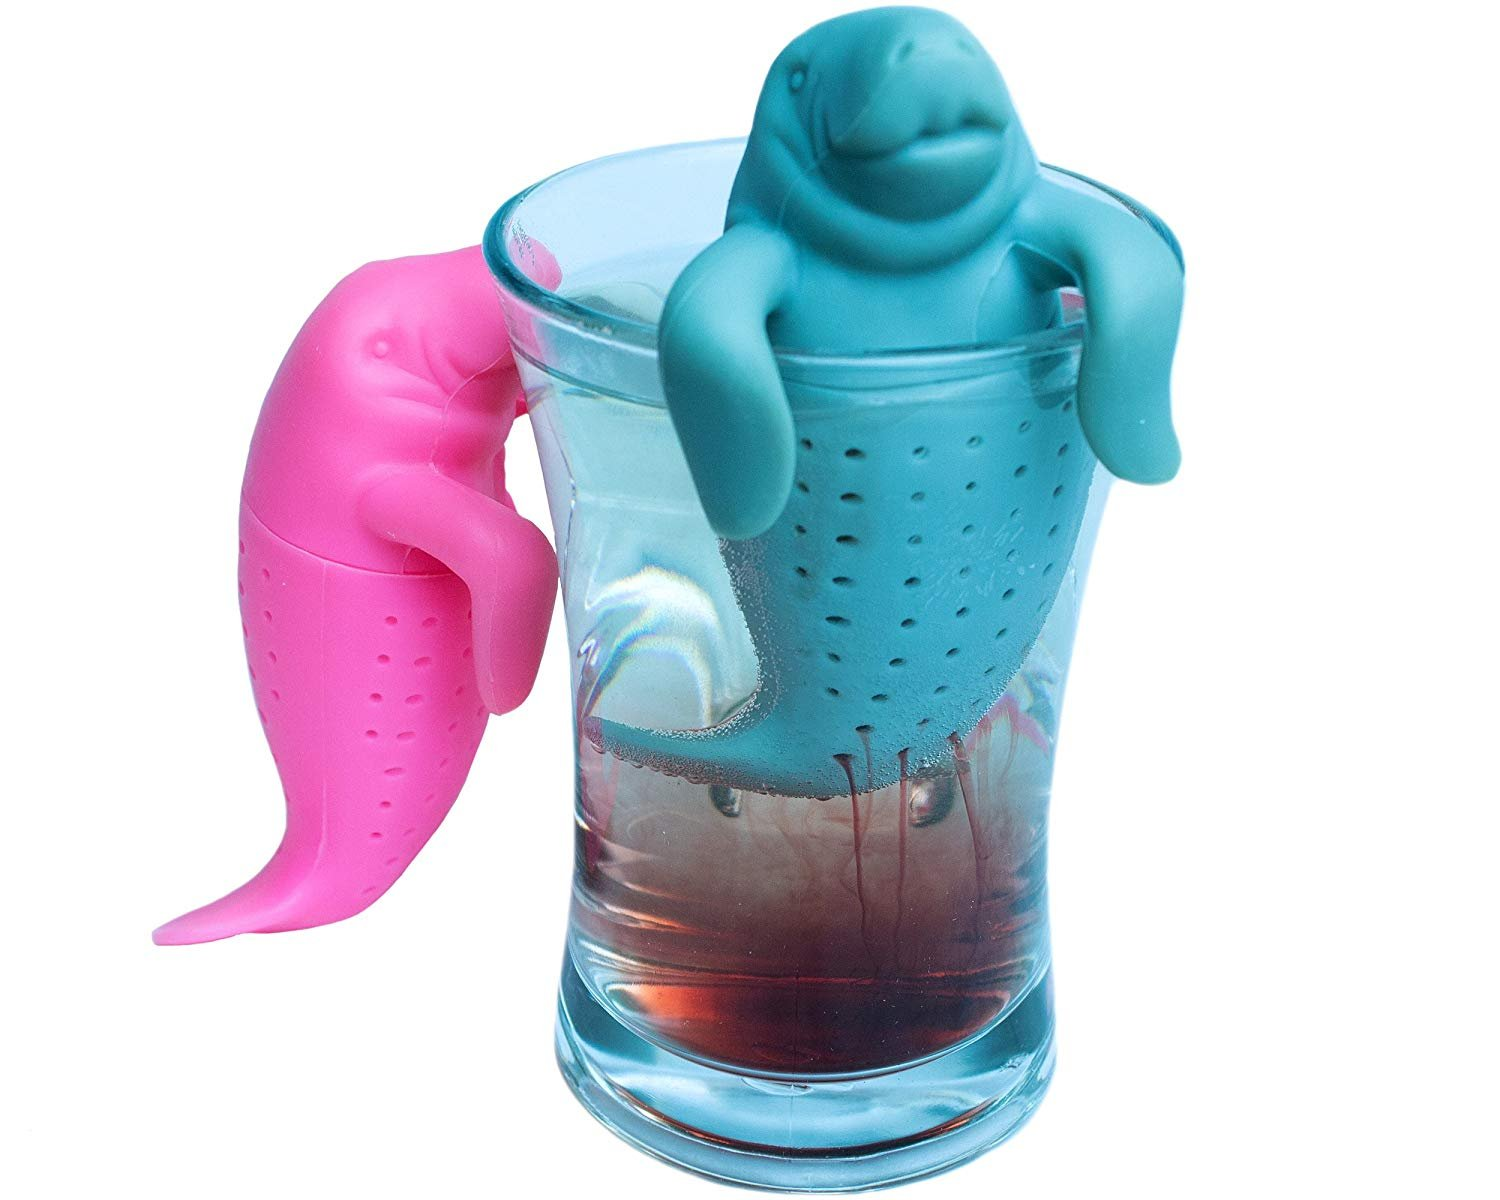 Manatee Loose Leaf Tea Infuser Gift Set of 2 Strainers for Herbal Weight Loss Tea and Mulling Spices Made from Grey and Pink Food-Grade Silicone